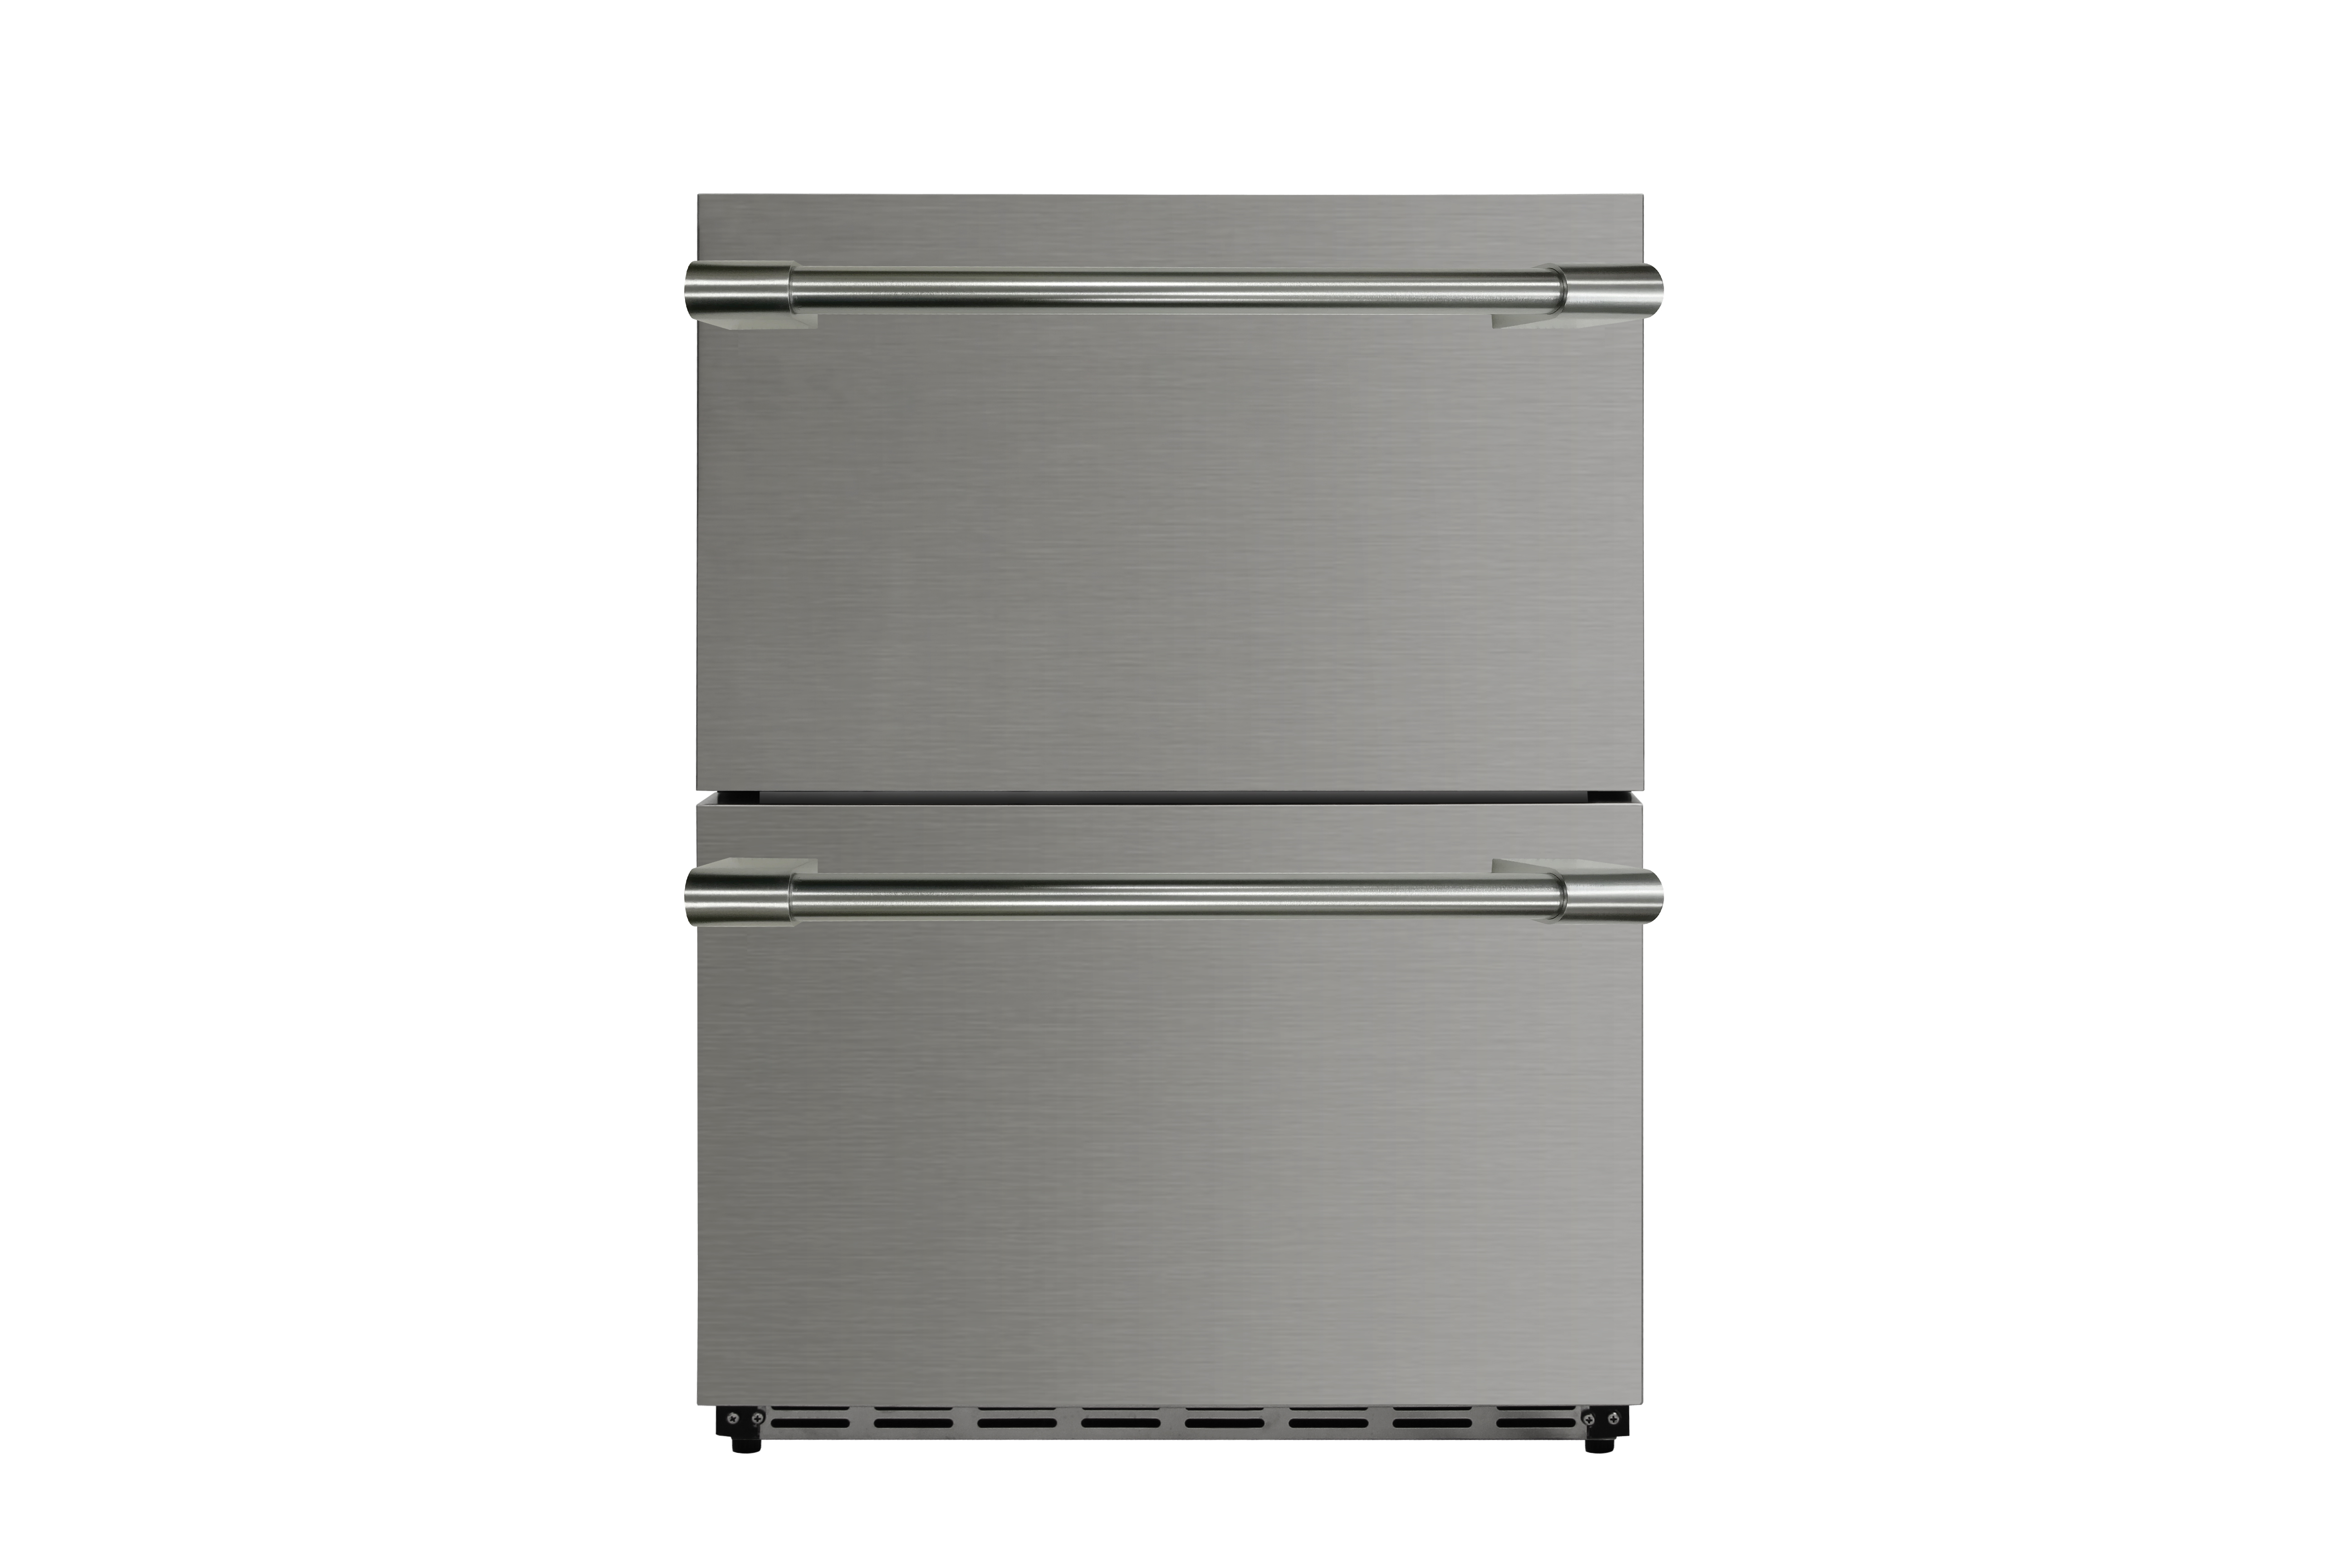 TH_Outdoor Refrigerator Drawers_1.jpg